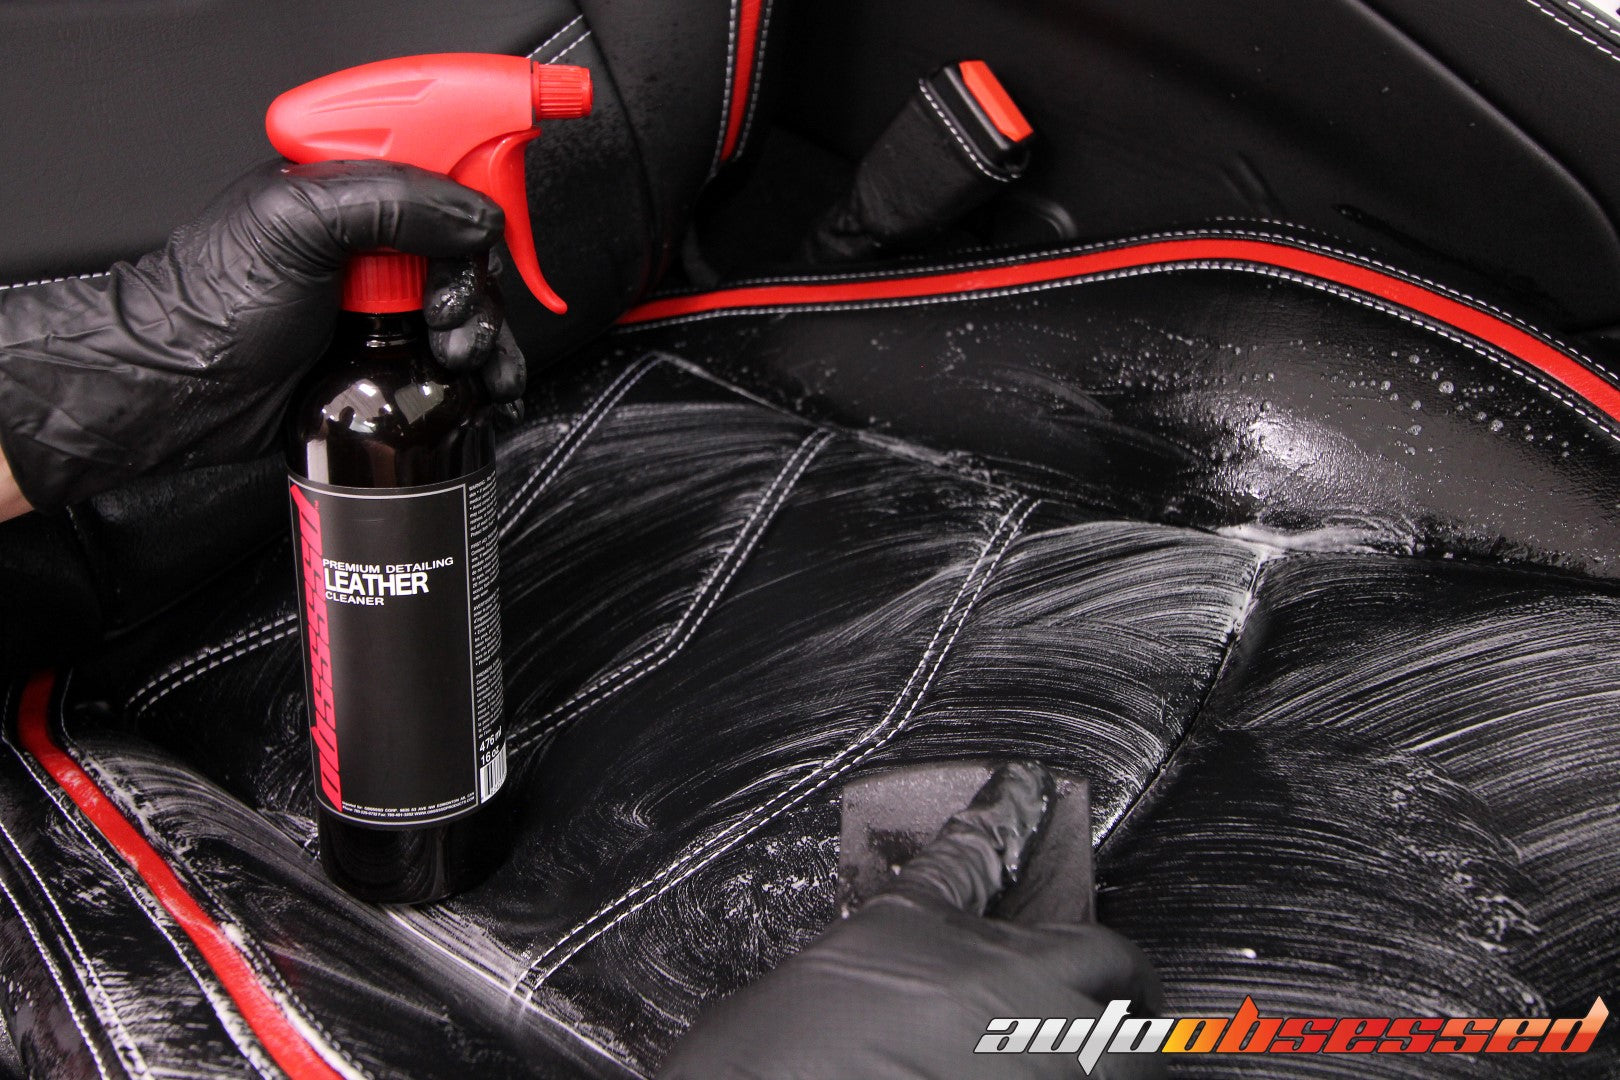 LEATHER CLEANING LEATHER CONDITIONER AND PROTECTION - Auto Obsessed Car Detailing